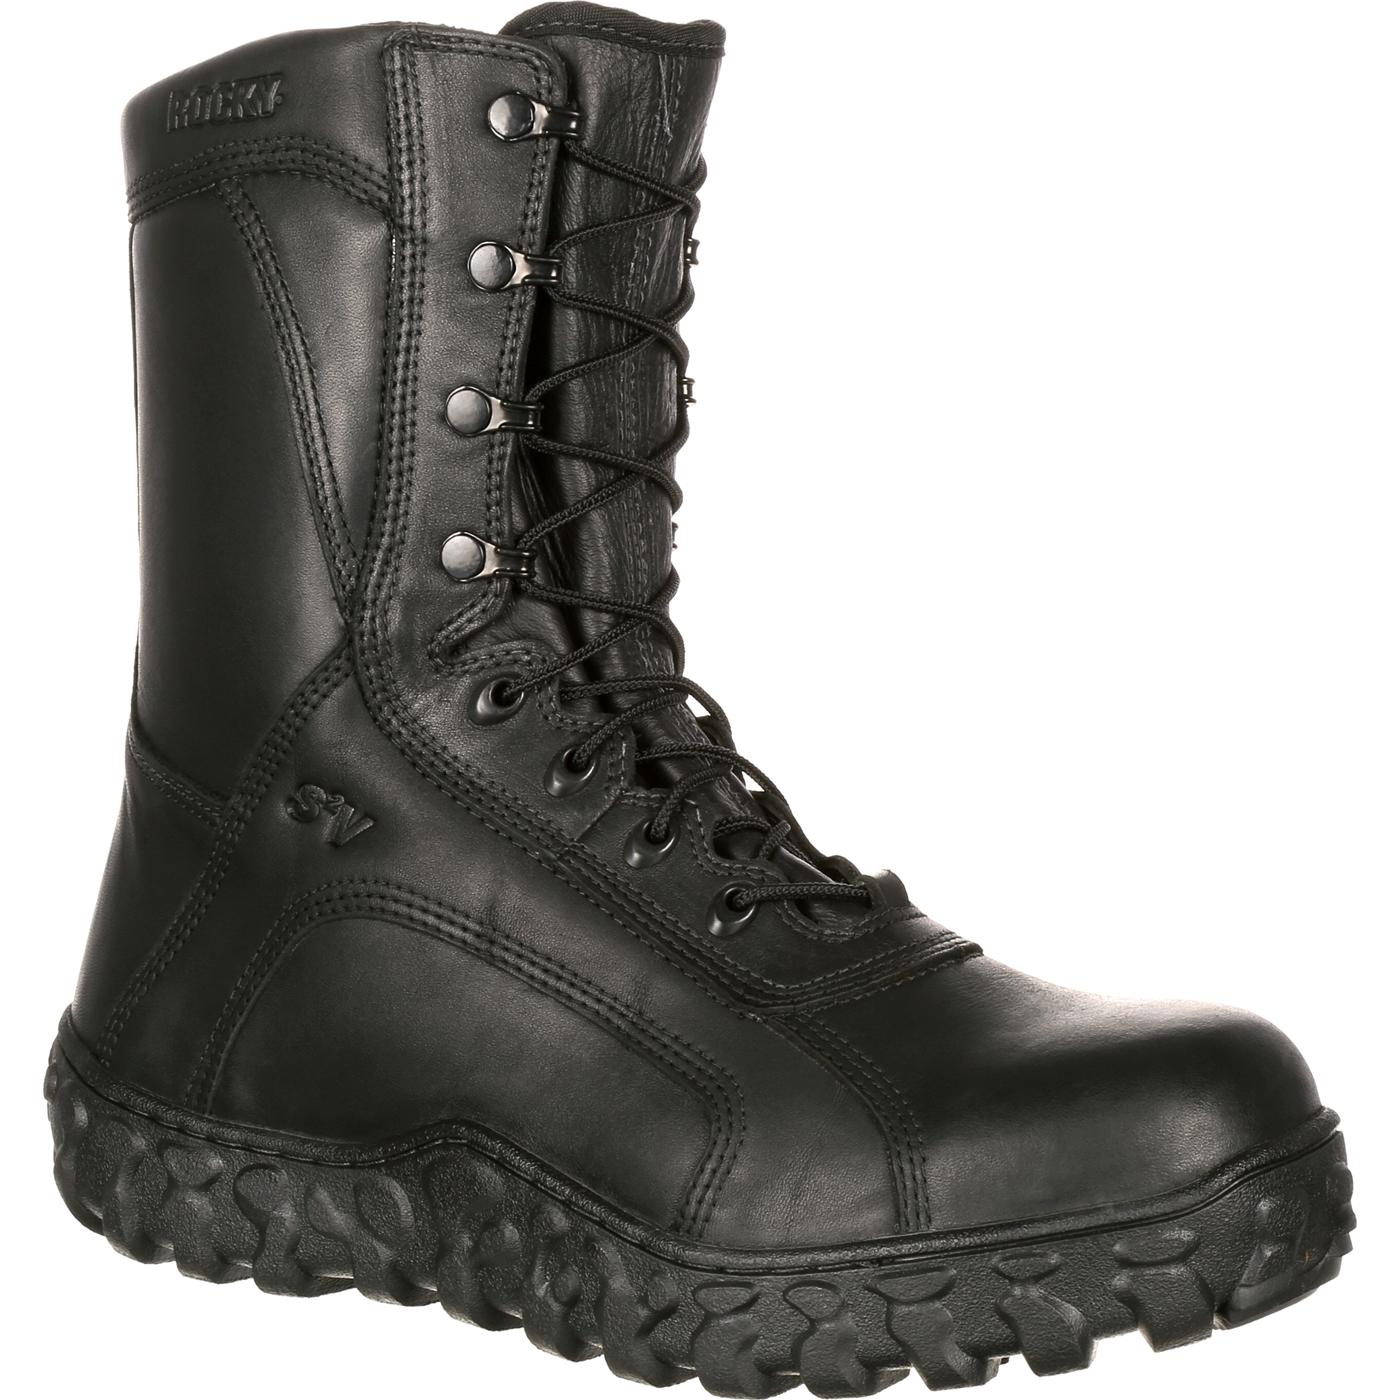 Steel Toe Tactical Military Boot Made In Usa Rocky S2v